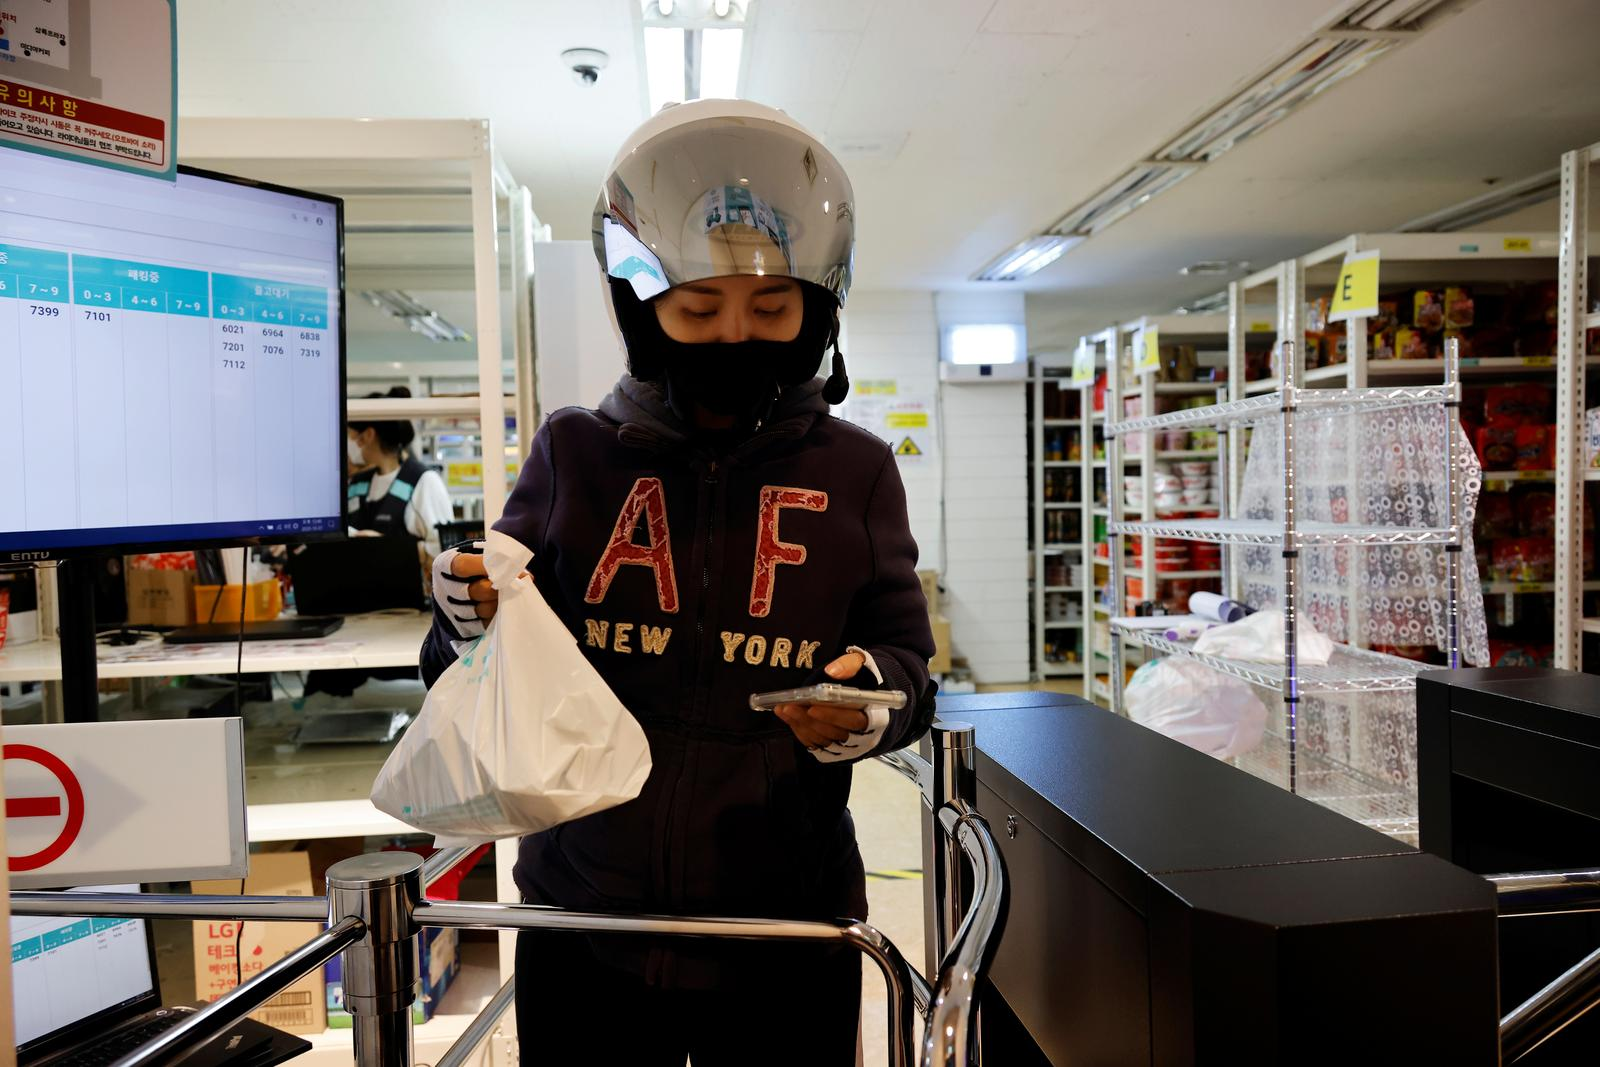 Chey Young-ah, a dispatch rider, checks her mobile phone while delivering groceries in Seongnam, South Korea, October 7, 2020. Photo: Reuters